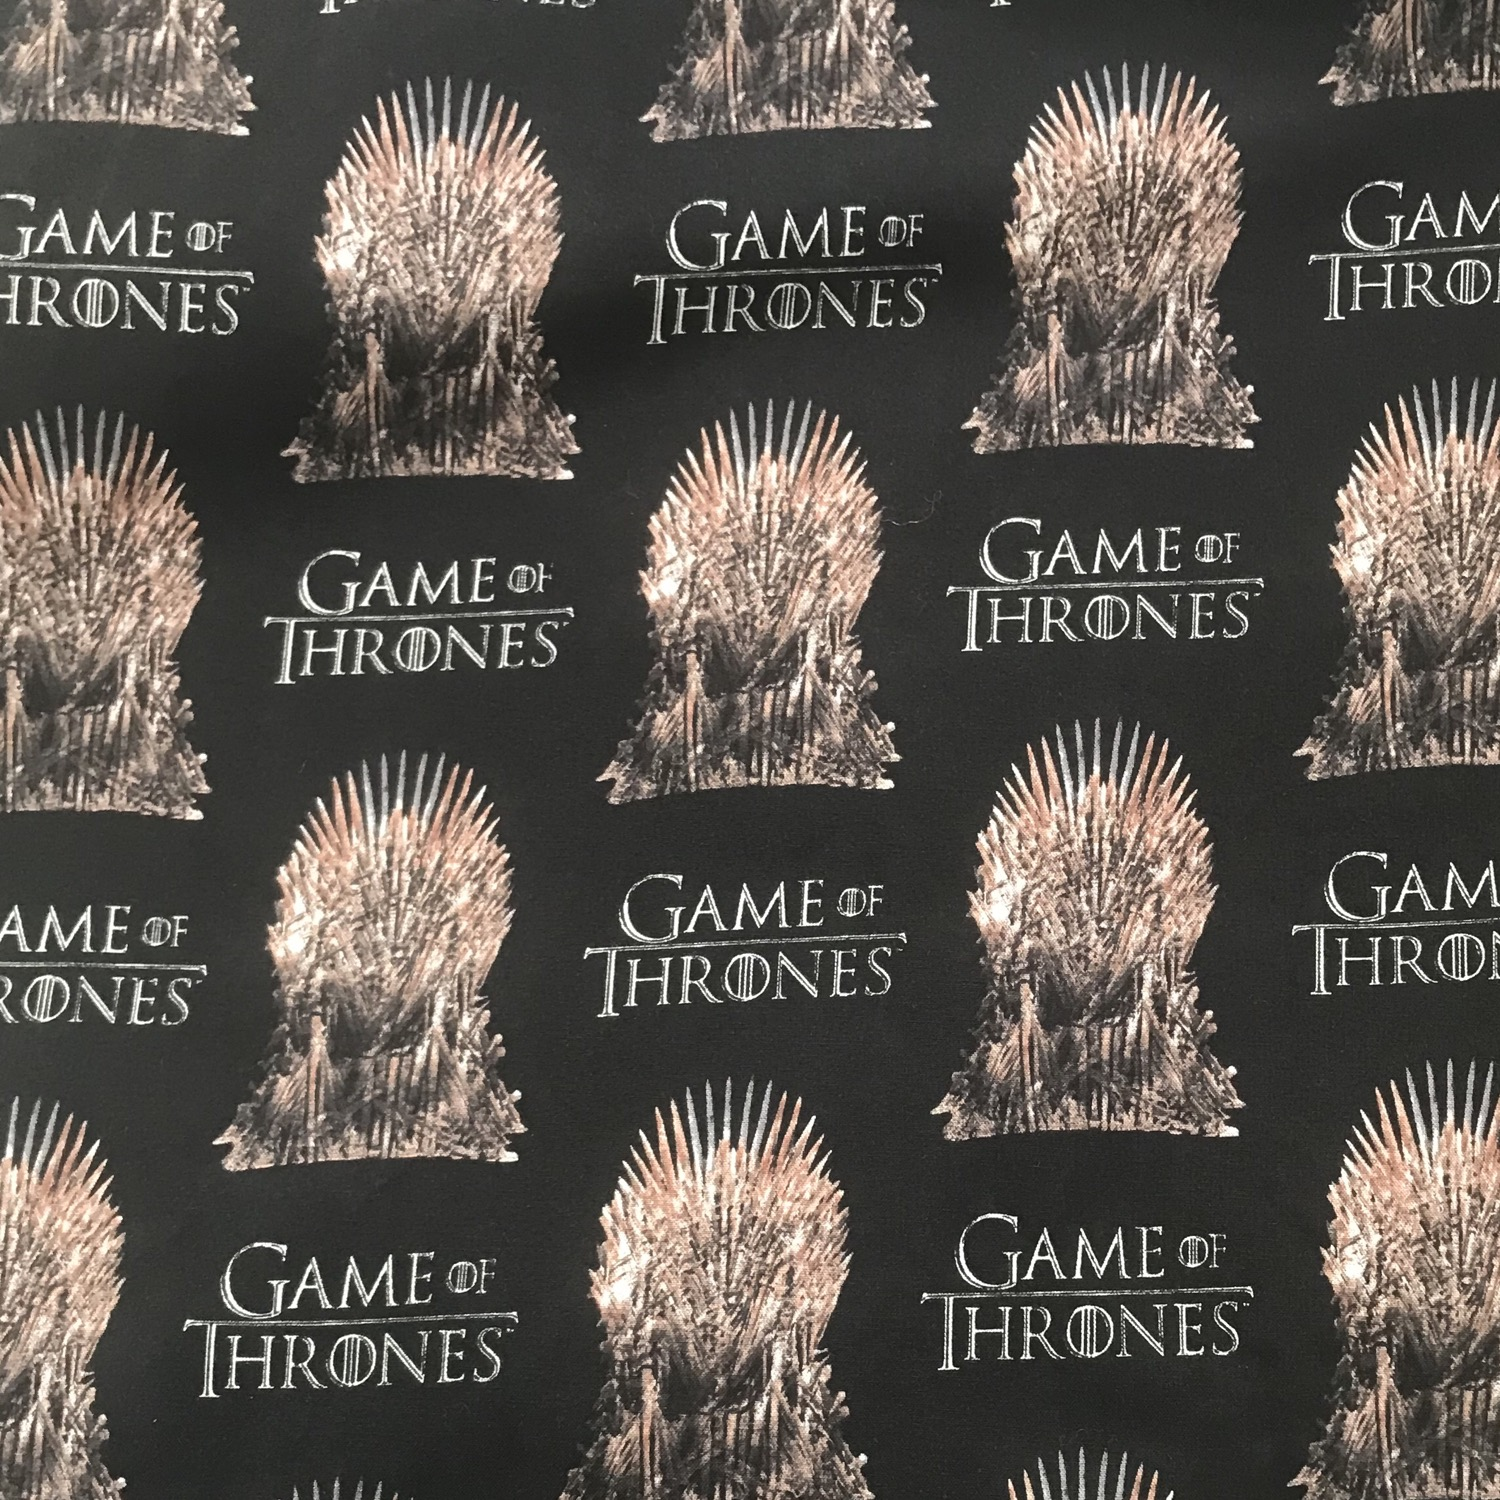 Game of Thrones on Black